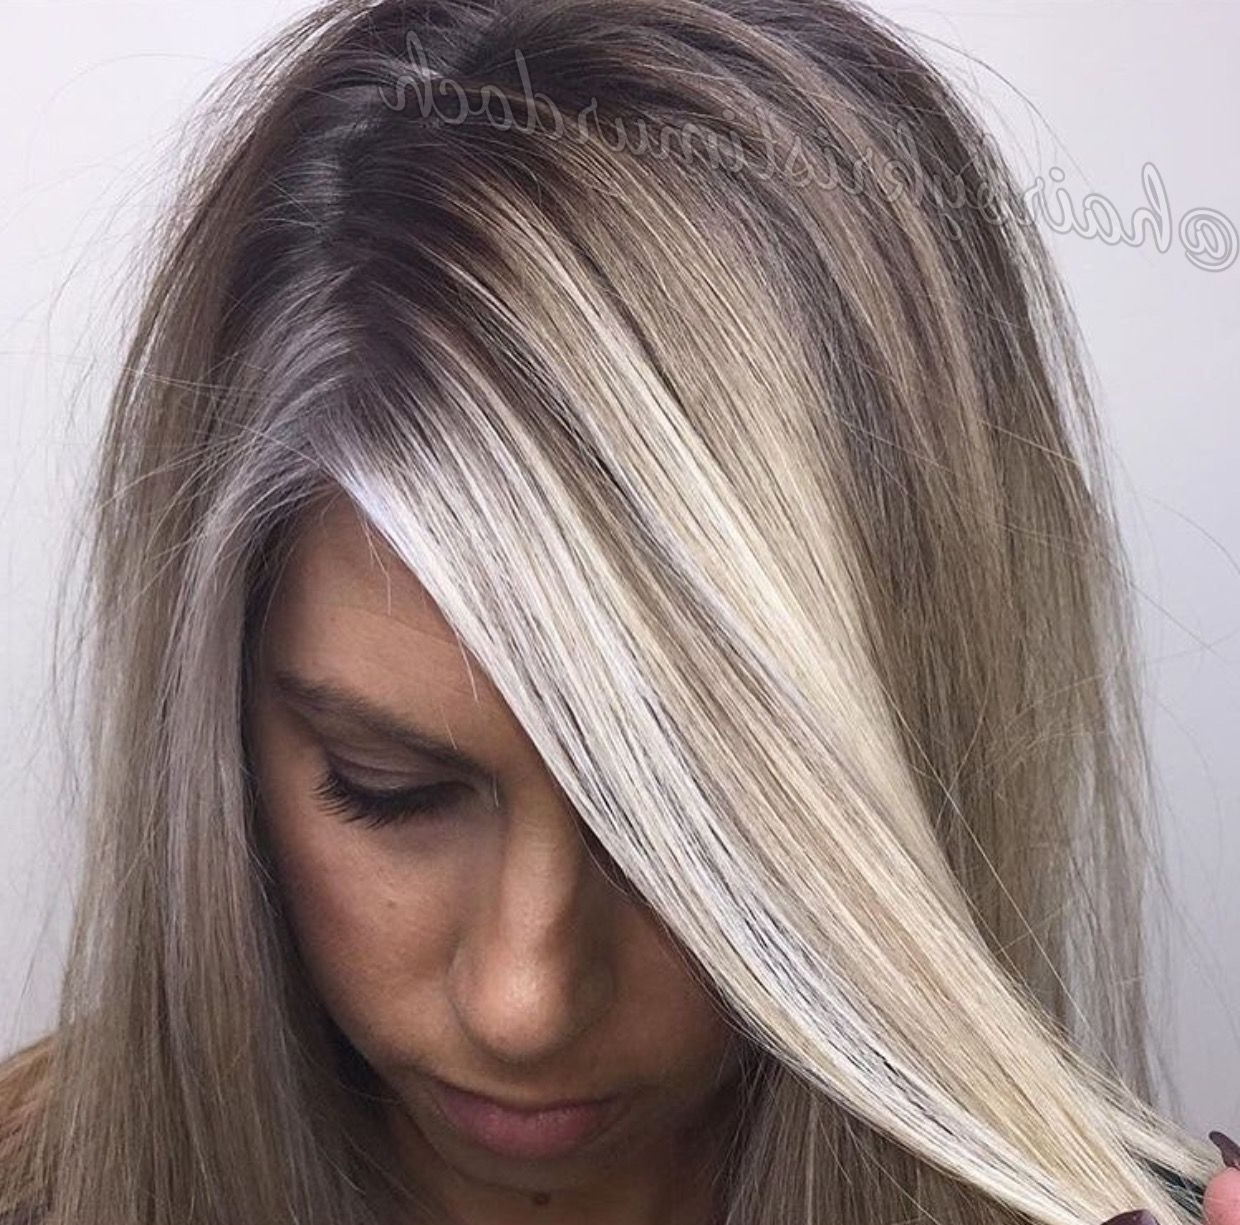 Baby Lights, Babylights, Shadow Root, Root Smudge, Balayage, Ash Intended For Most Recent Ashy Blonde Pixie Hairstyles With A Messy Touch (View 12 of 20)